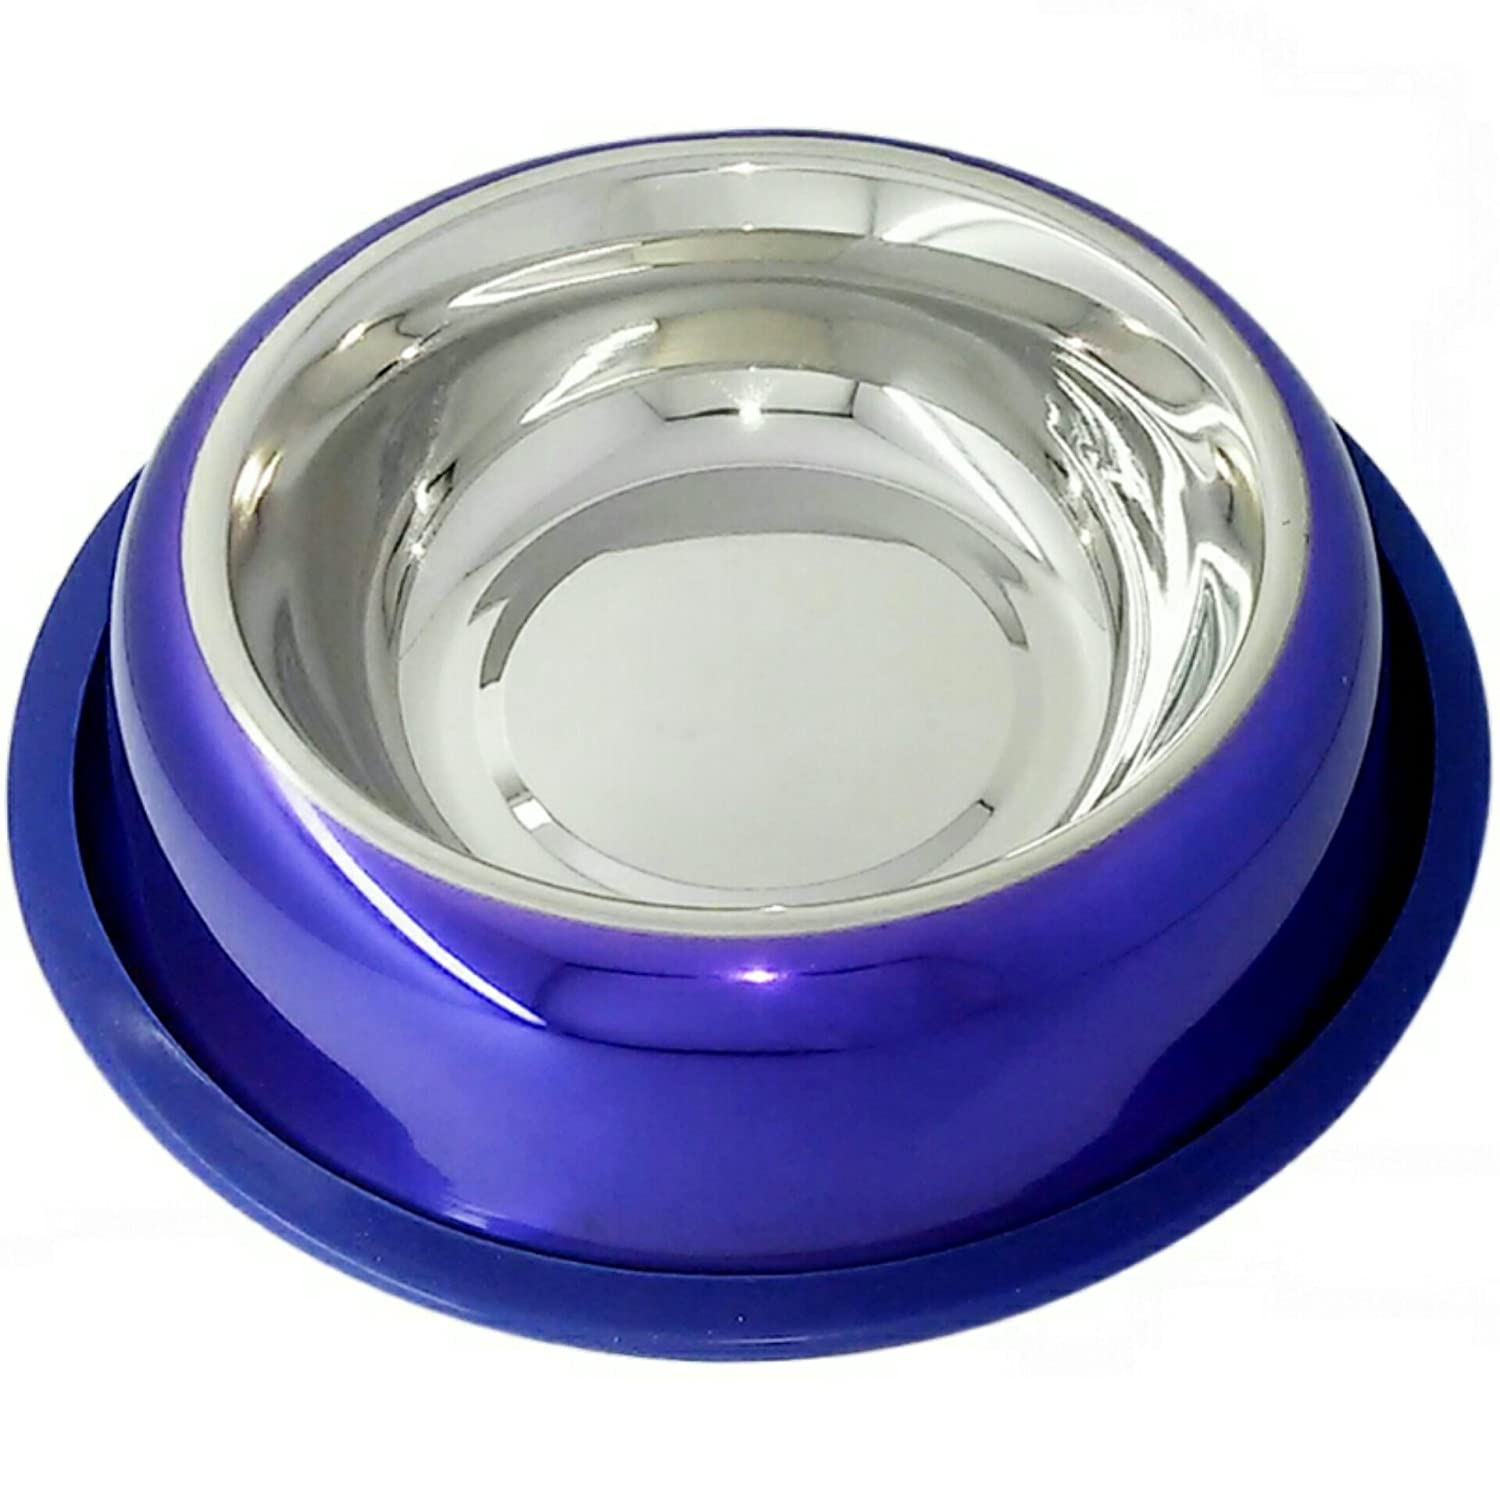 Mr. Peanut's Premium High Gloss Lacquer Coated Stainless Steel Dog Bowl, Rust Proof with Non-Skid Long Lasting Silicone Base (No Rubber Smell!) That Won't Slip, 24oz (Dry Weight) Pet Feeding Bowl